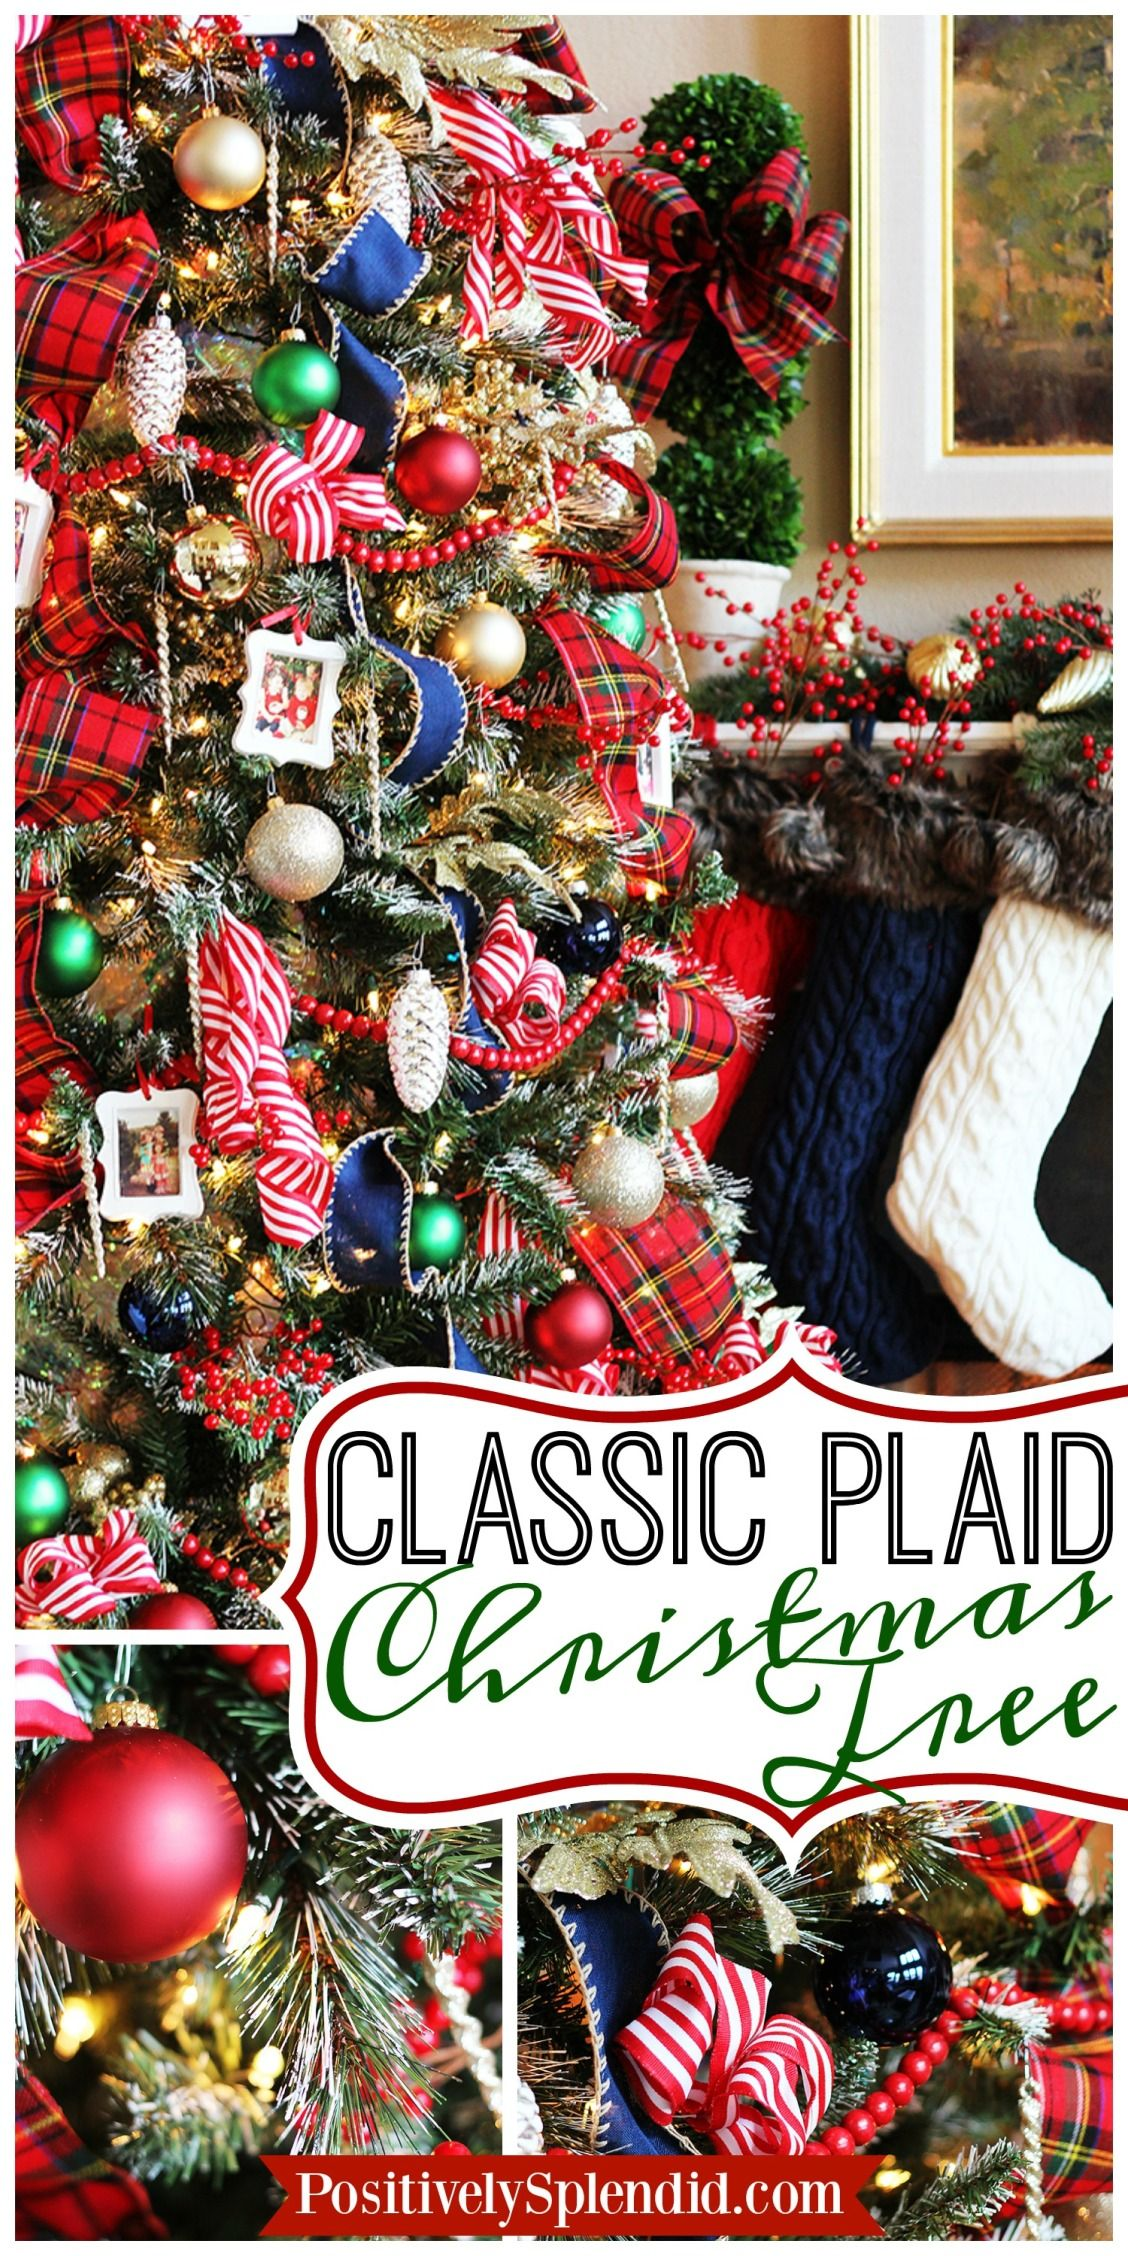 traditional plaid christmas tree decorations are a classic traditional tartan plaid in red white green and blue make this tree a knock out